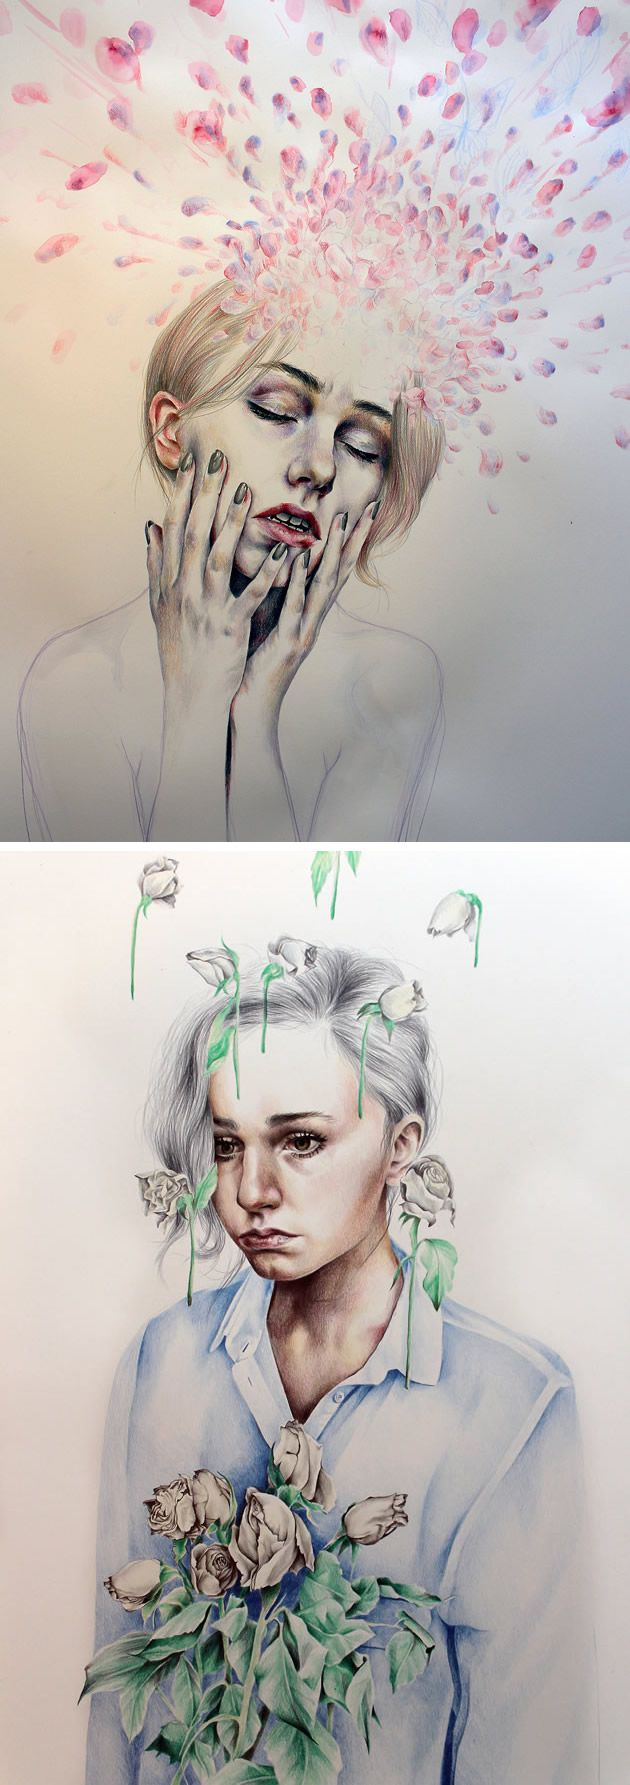 18 year old artist Kate Powell launches career in high school using social media